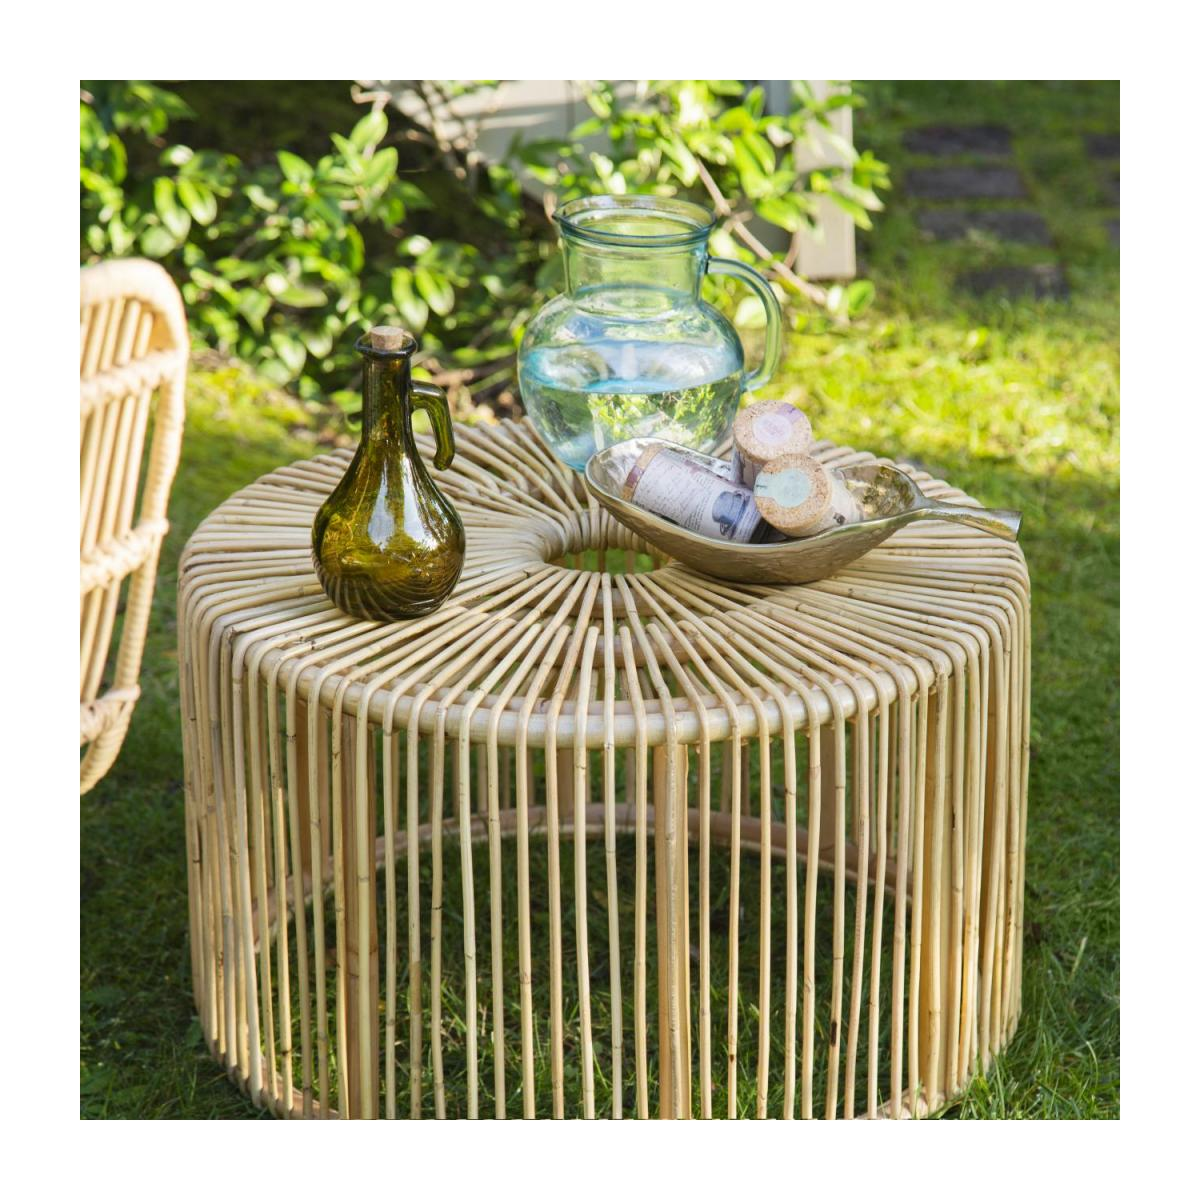 Table basse ronde en rotin - Naturel - Design by Marie Matsuura n°2